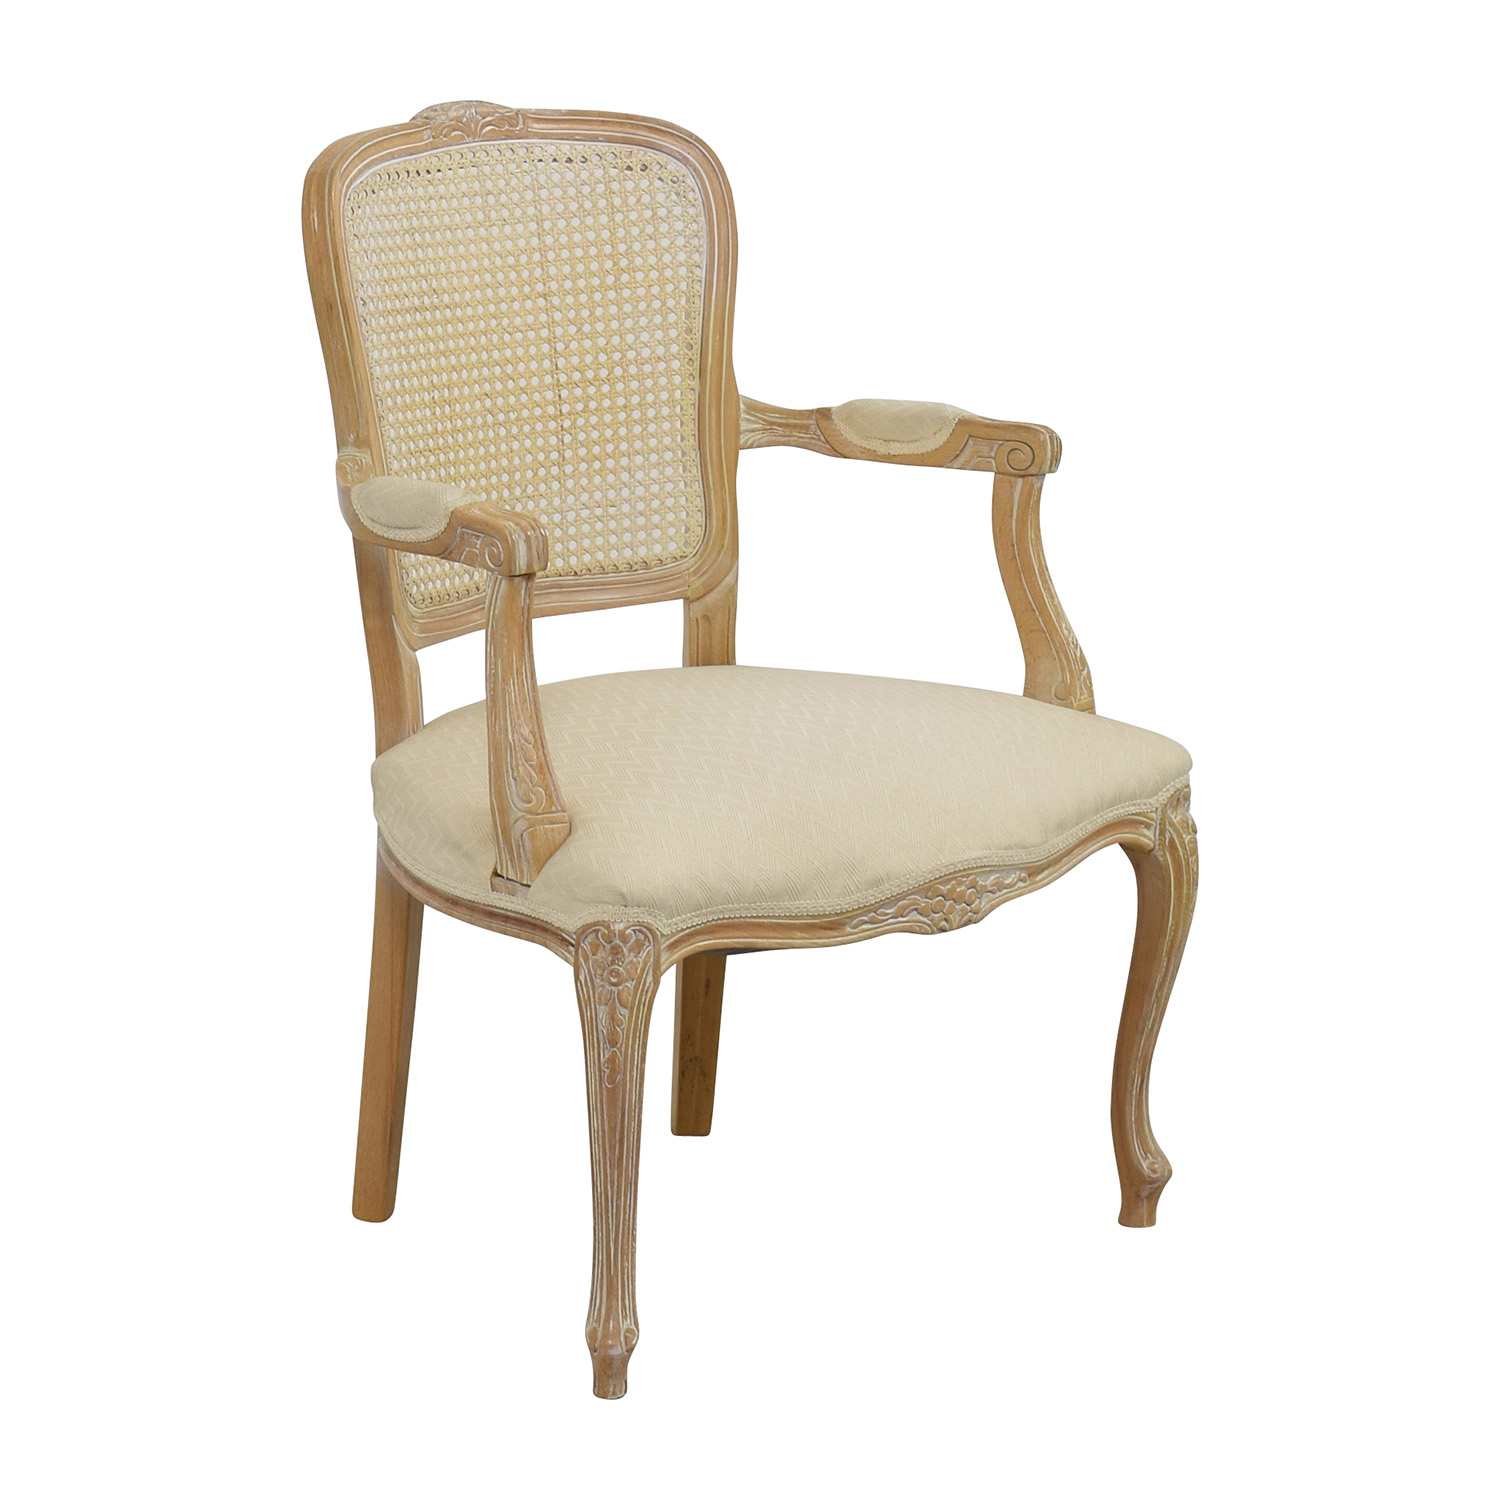 68% OFF Link Taylor Link Taylor French Provincial Creme Chair